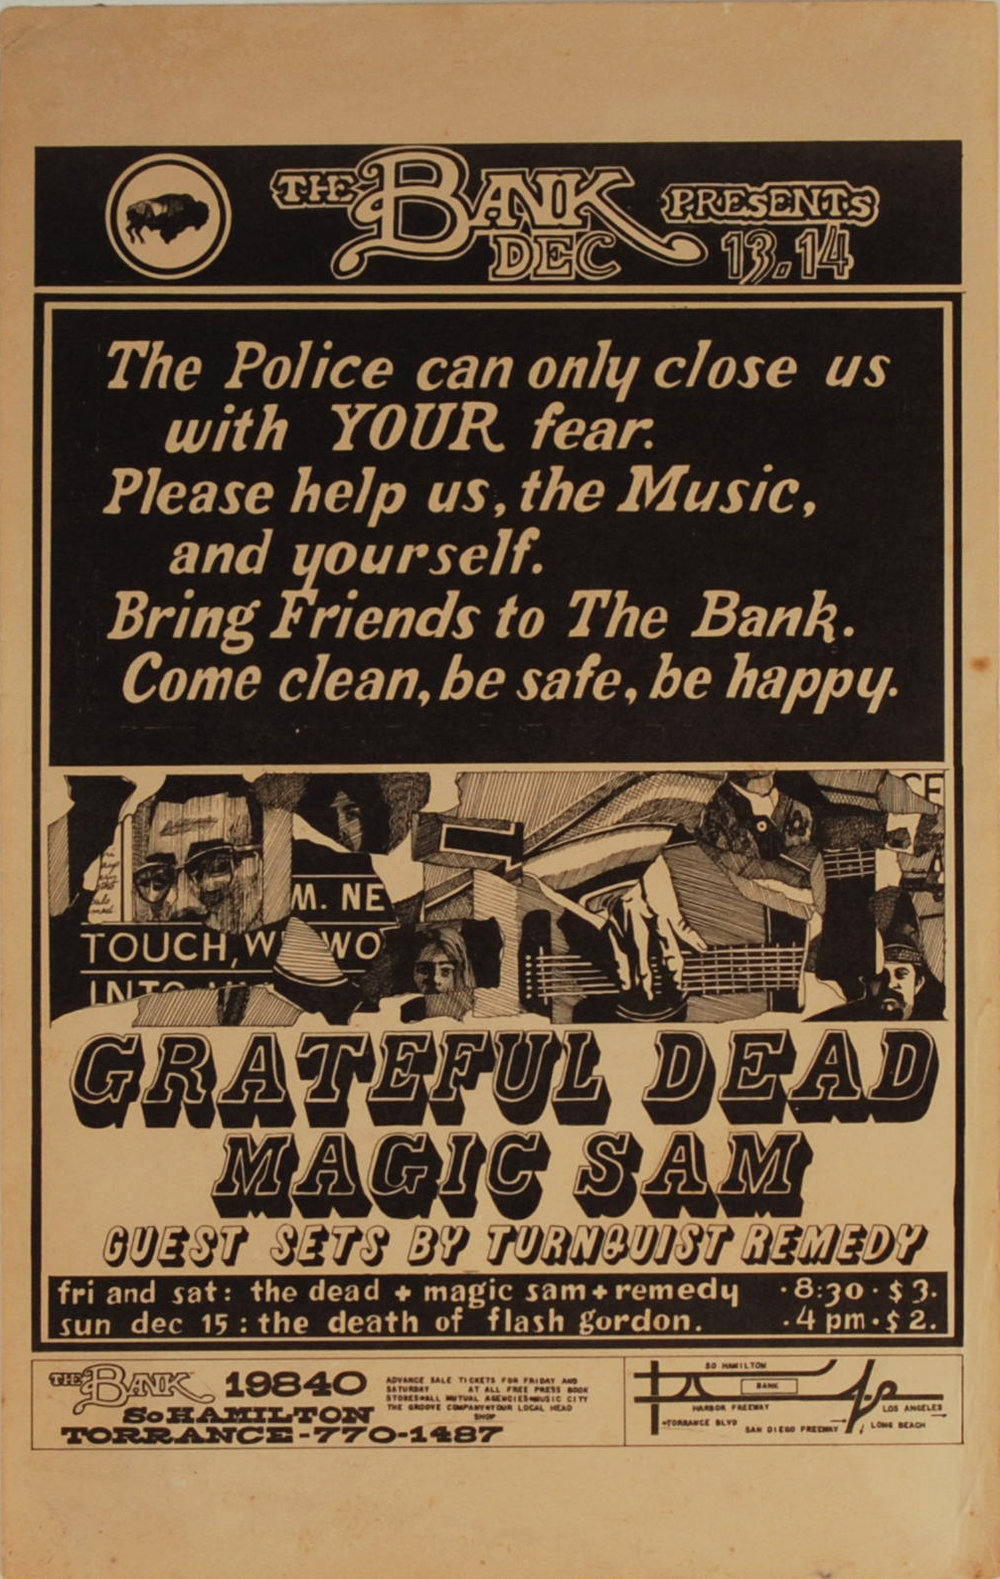 Grateful Dead, The Bank